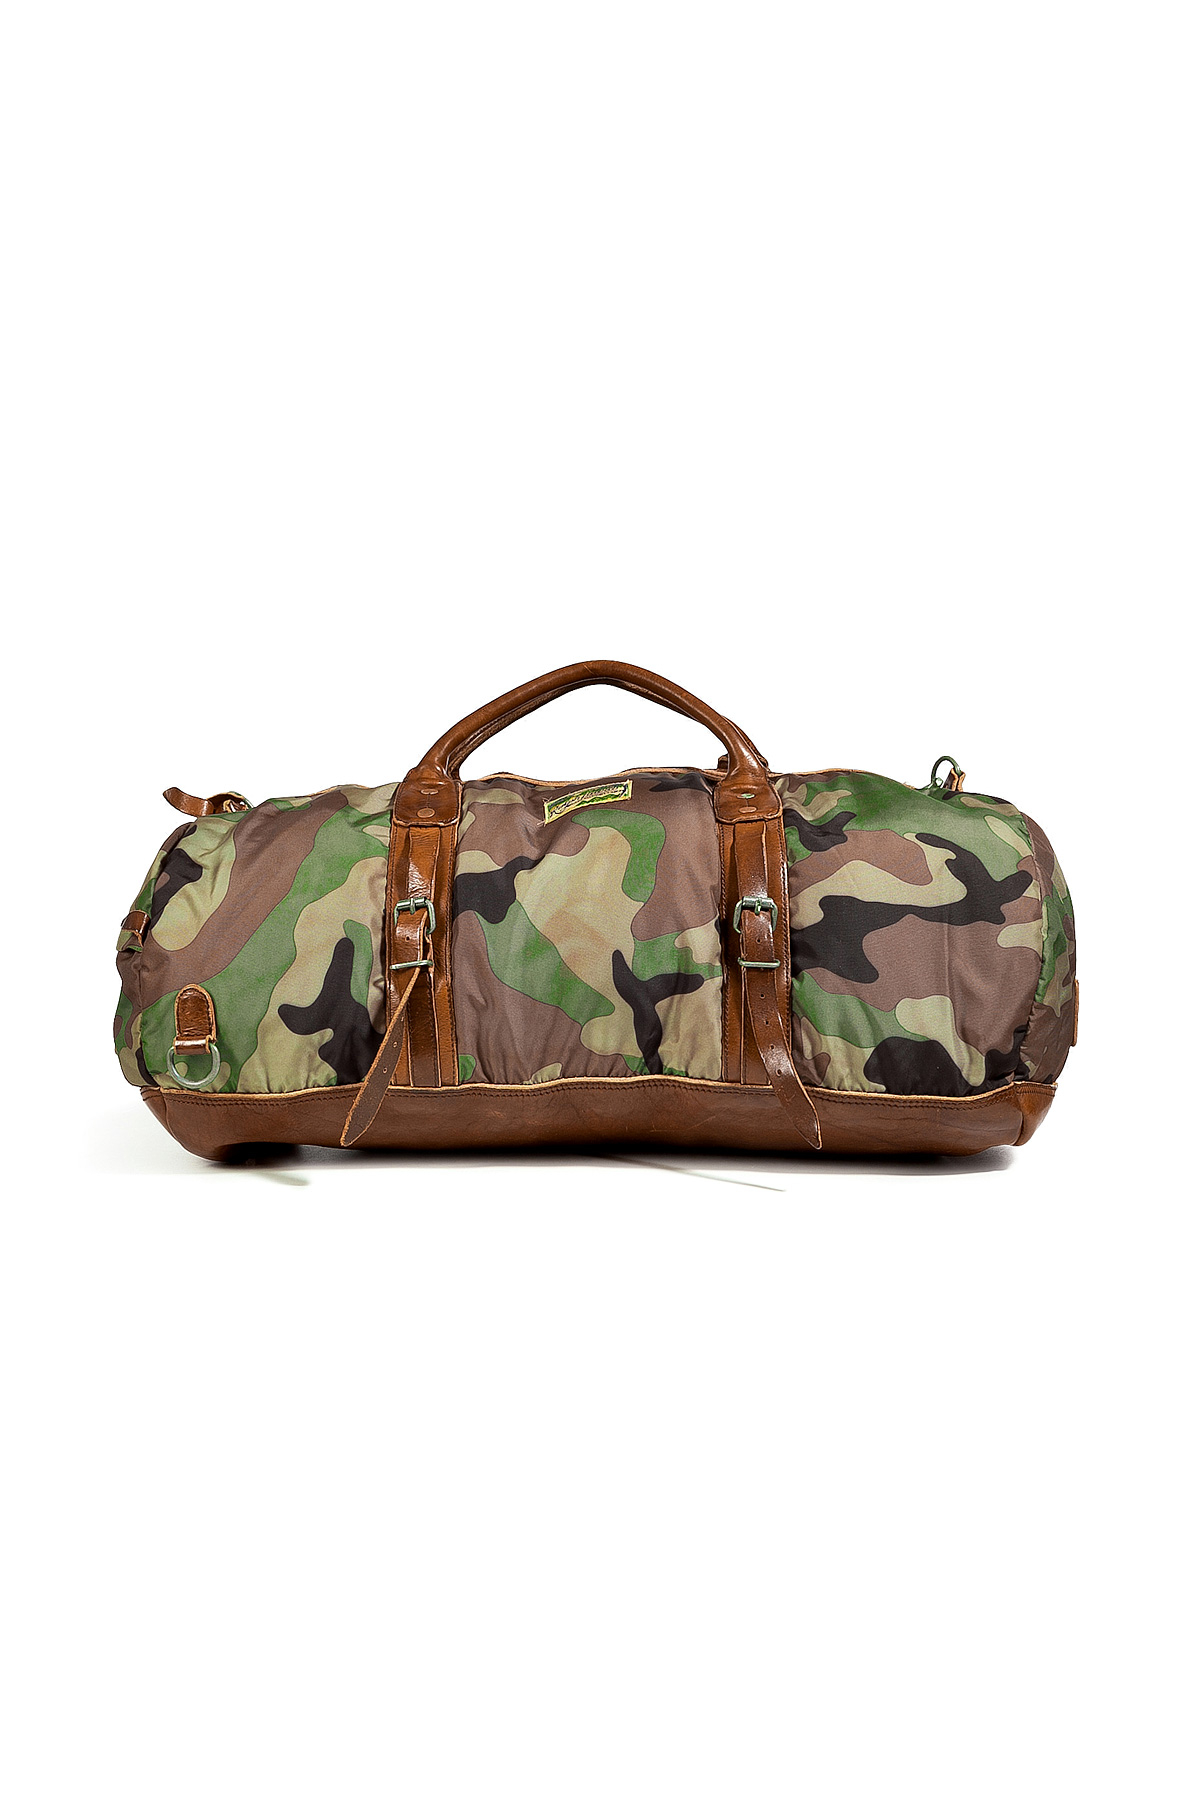 Lyst - Polo Ralph Lauren Camo Print Duffle Bag With Leather Trim in ... 5e0e6946911c4